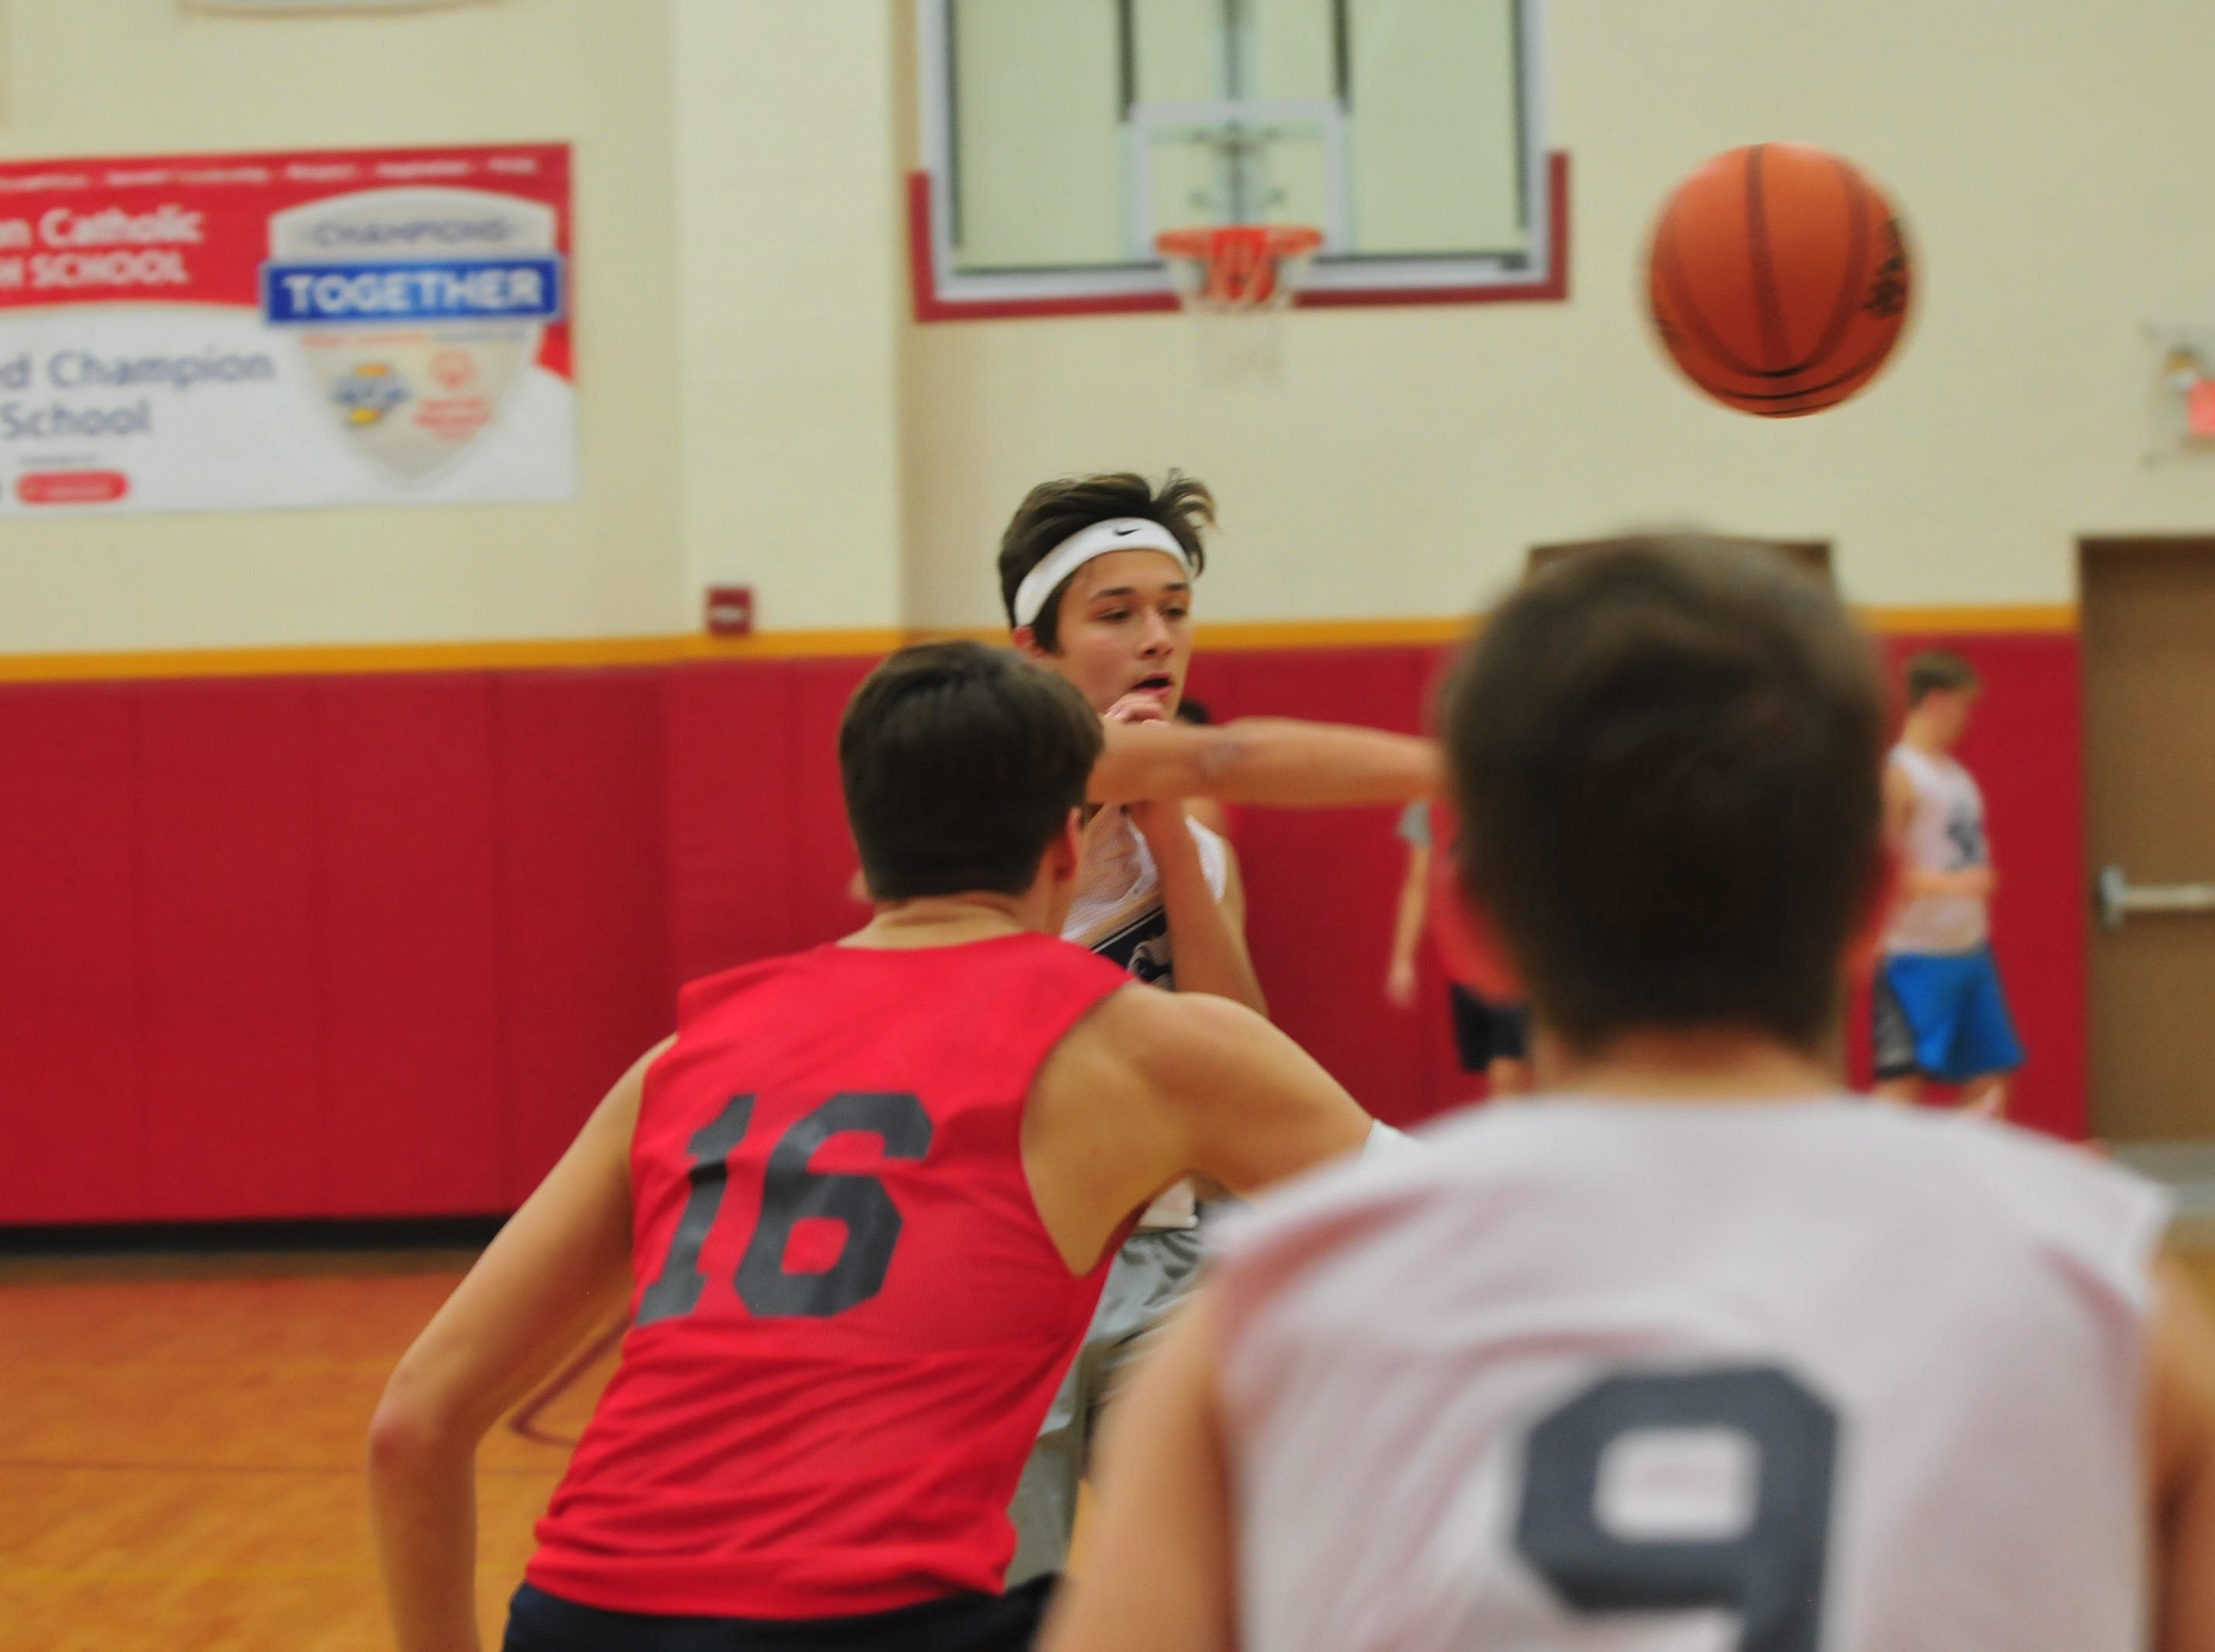 Seton Catholic boys basketball players practice Wednesday, Nov. 28, 2018.